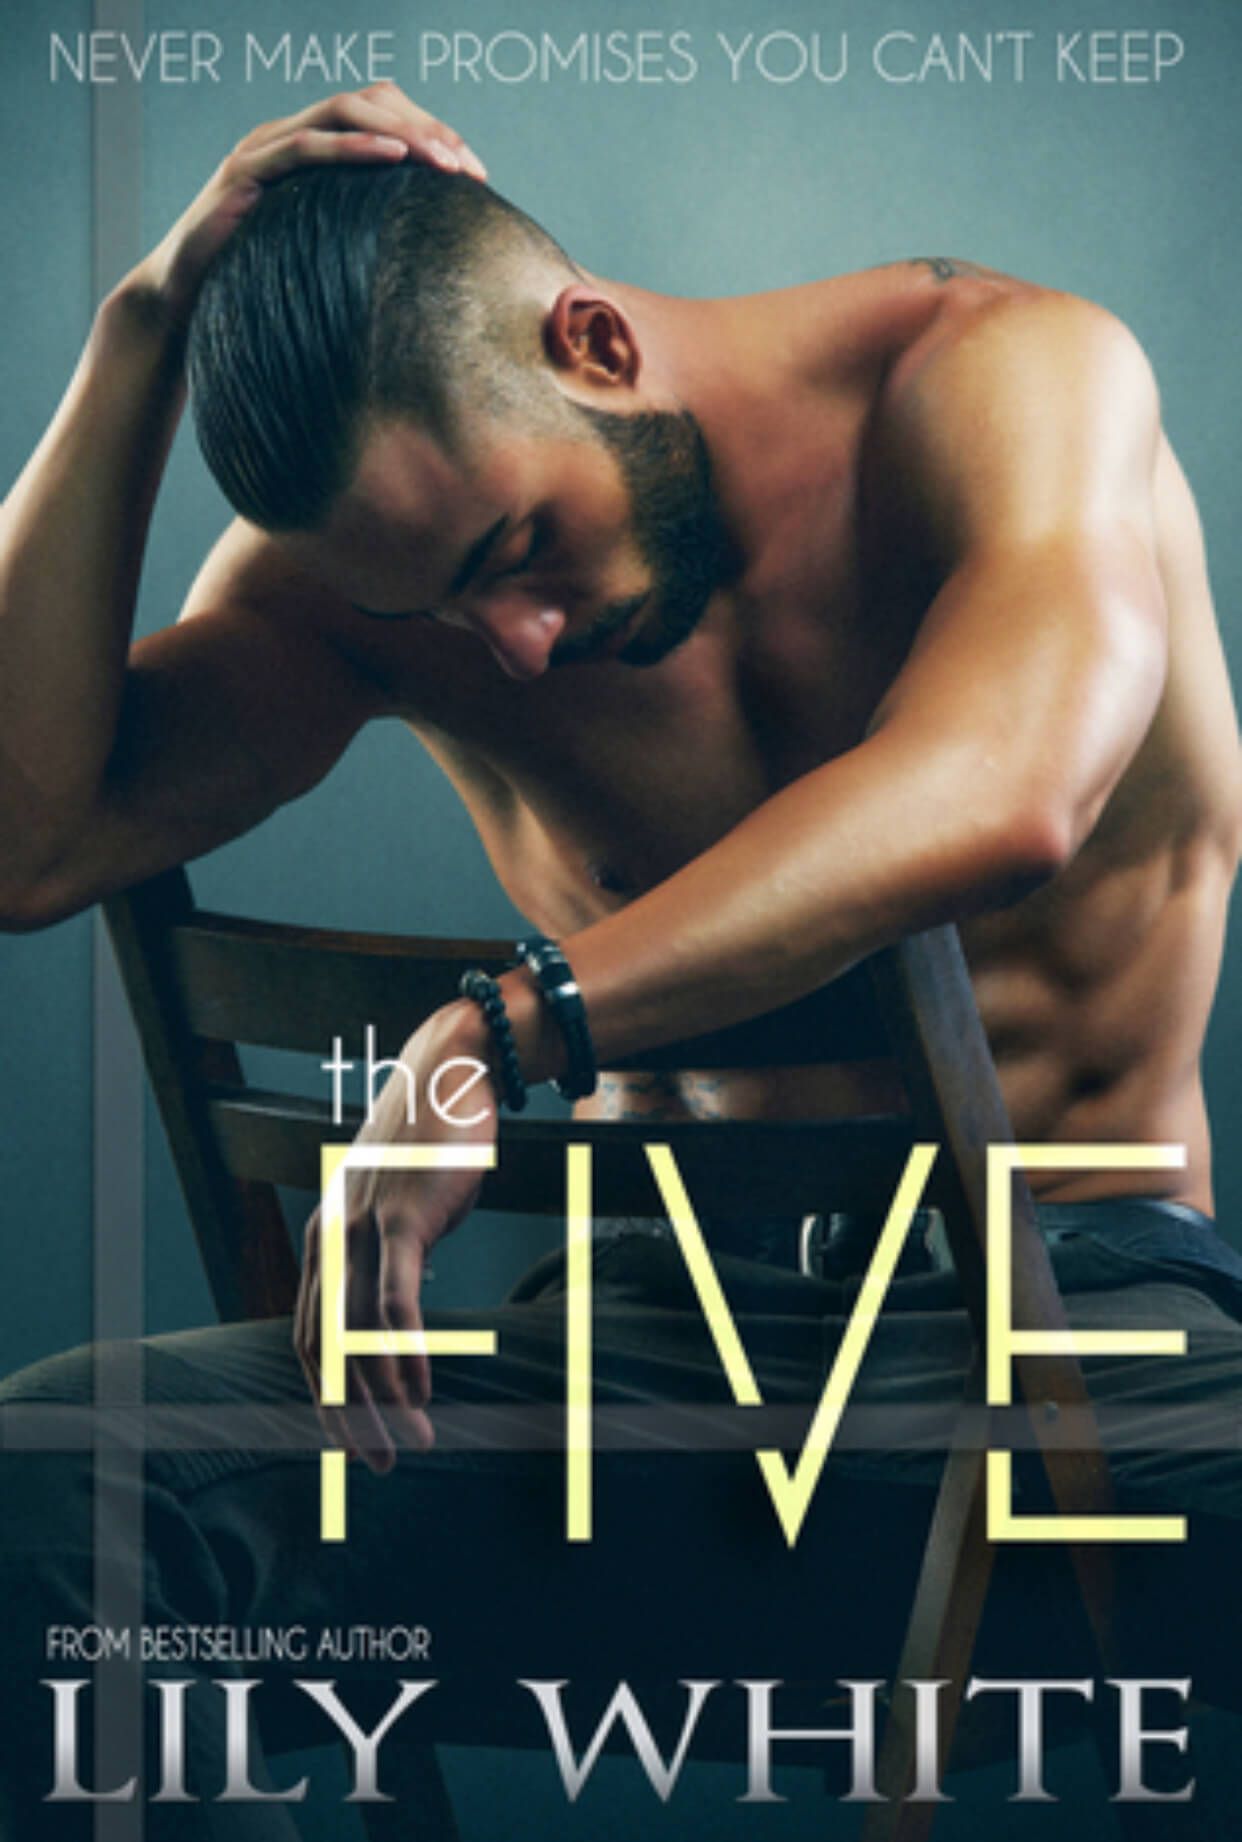 Release Blitz * The Five by Lily White * 5 Star Book Review * Blog Tour * Giveaway * Excerpt